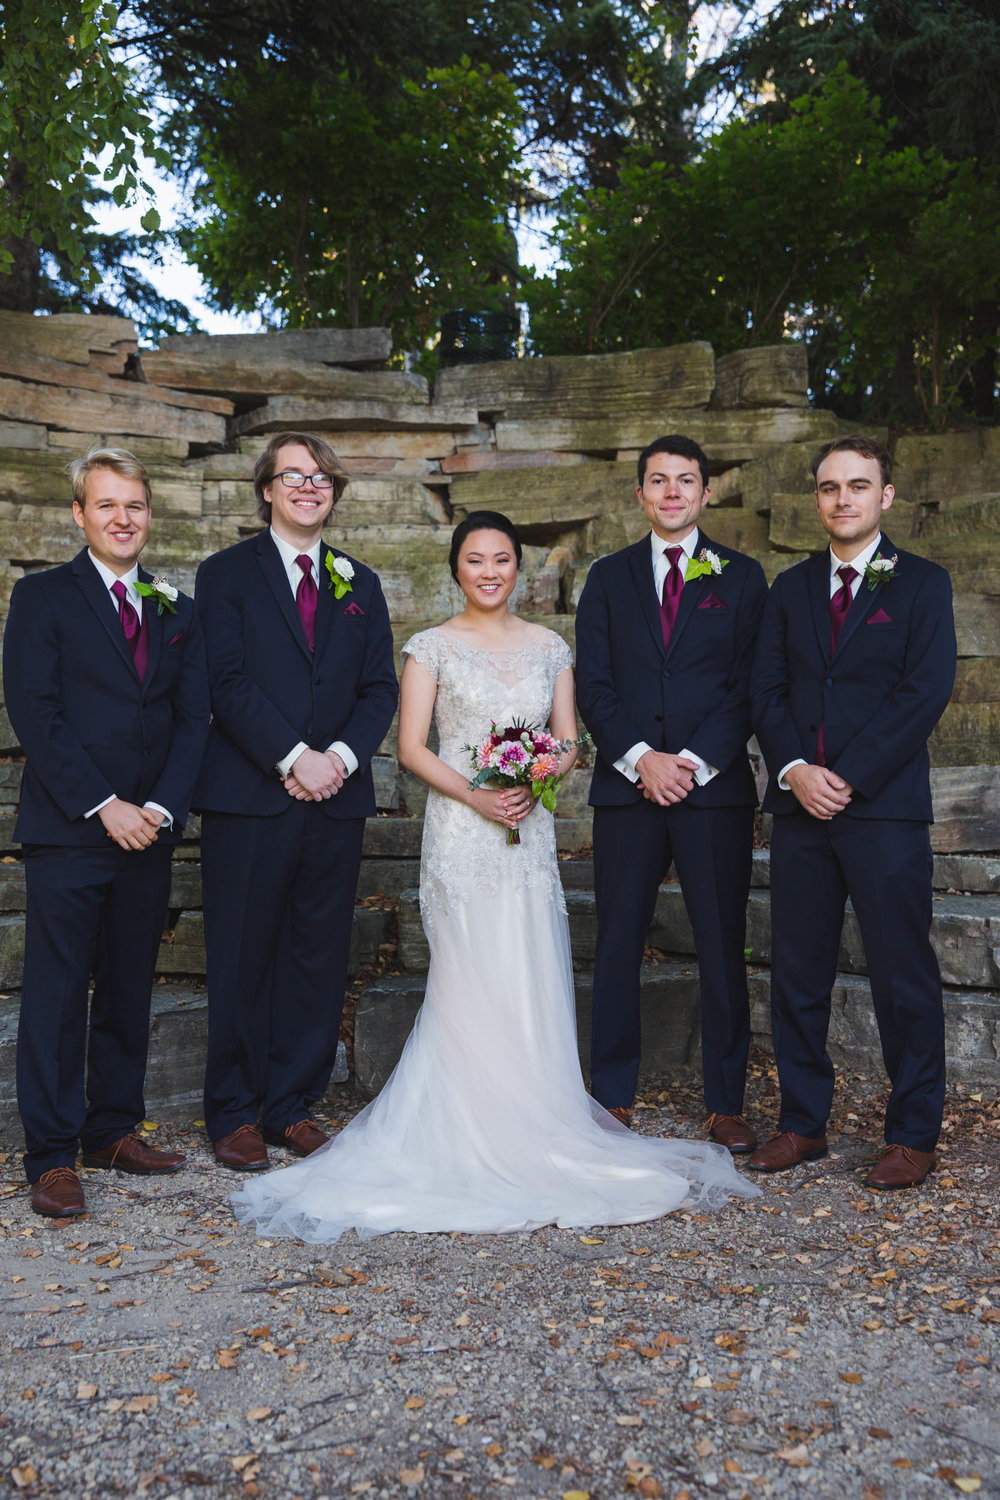 courtney and tom's wedding at pinstripes by anna schultz photography-22.jpg